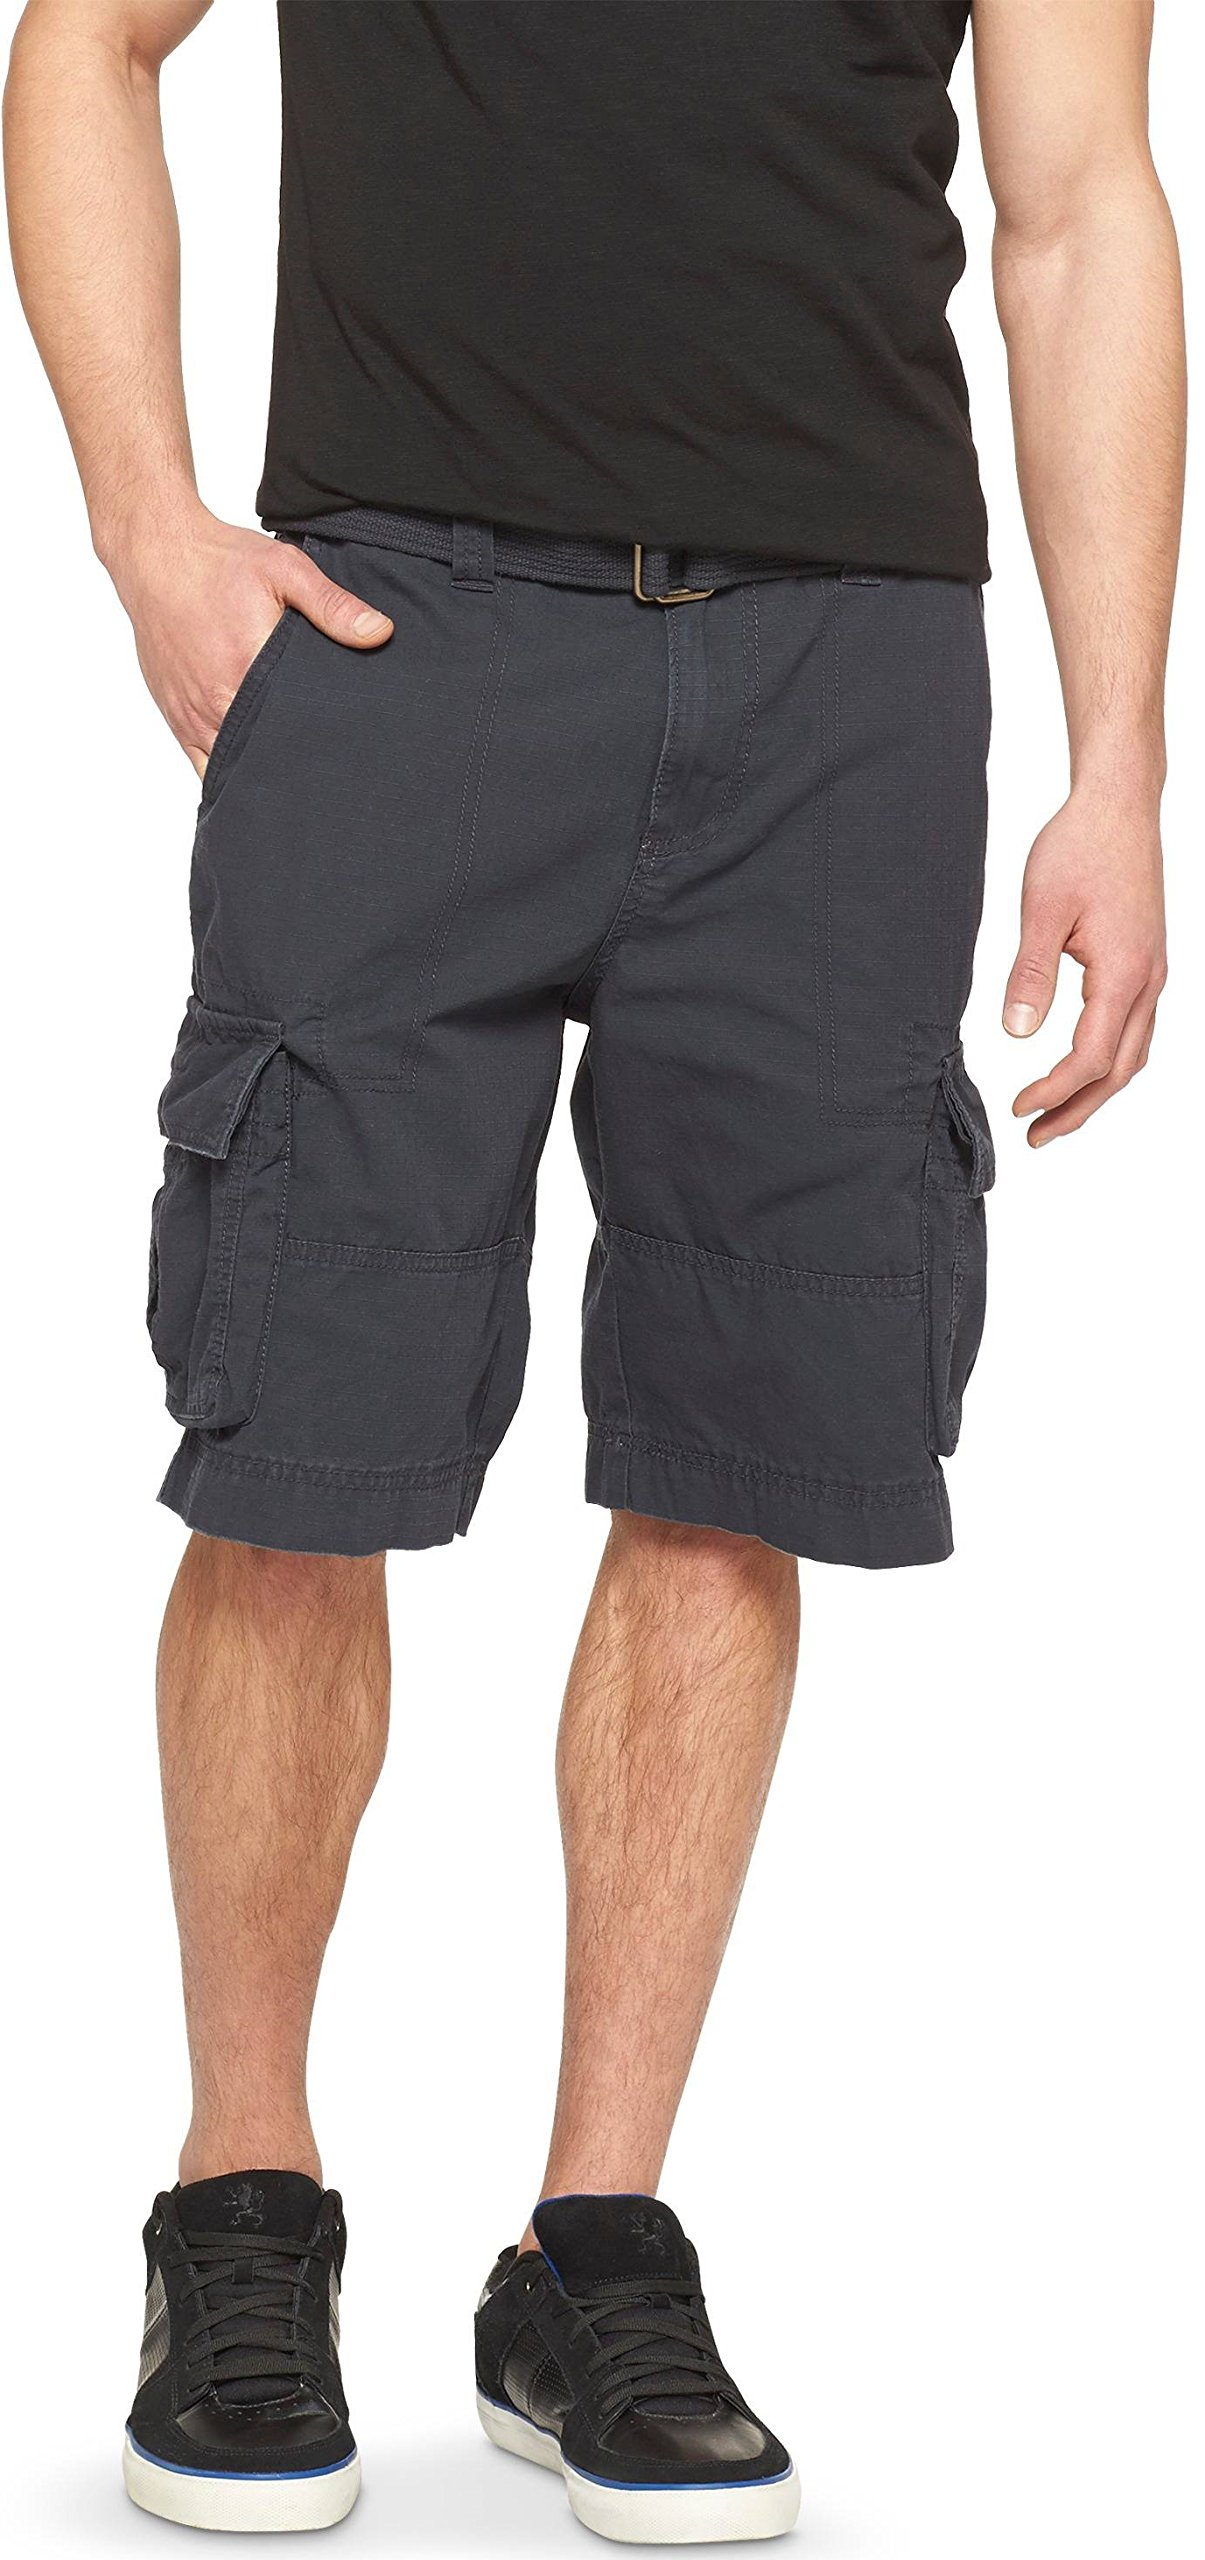 Mossimo Men's Belted Cargo Shorts (Black, 28)